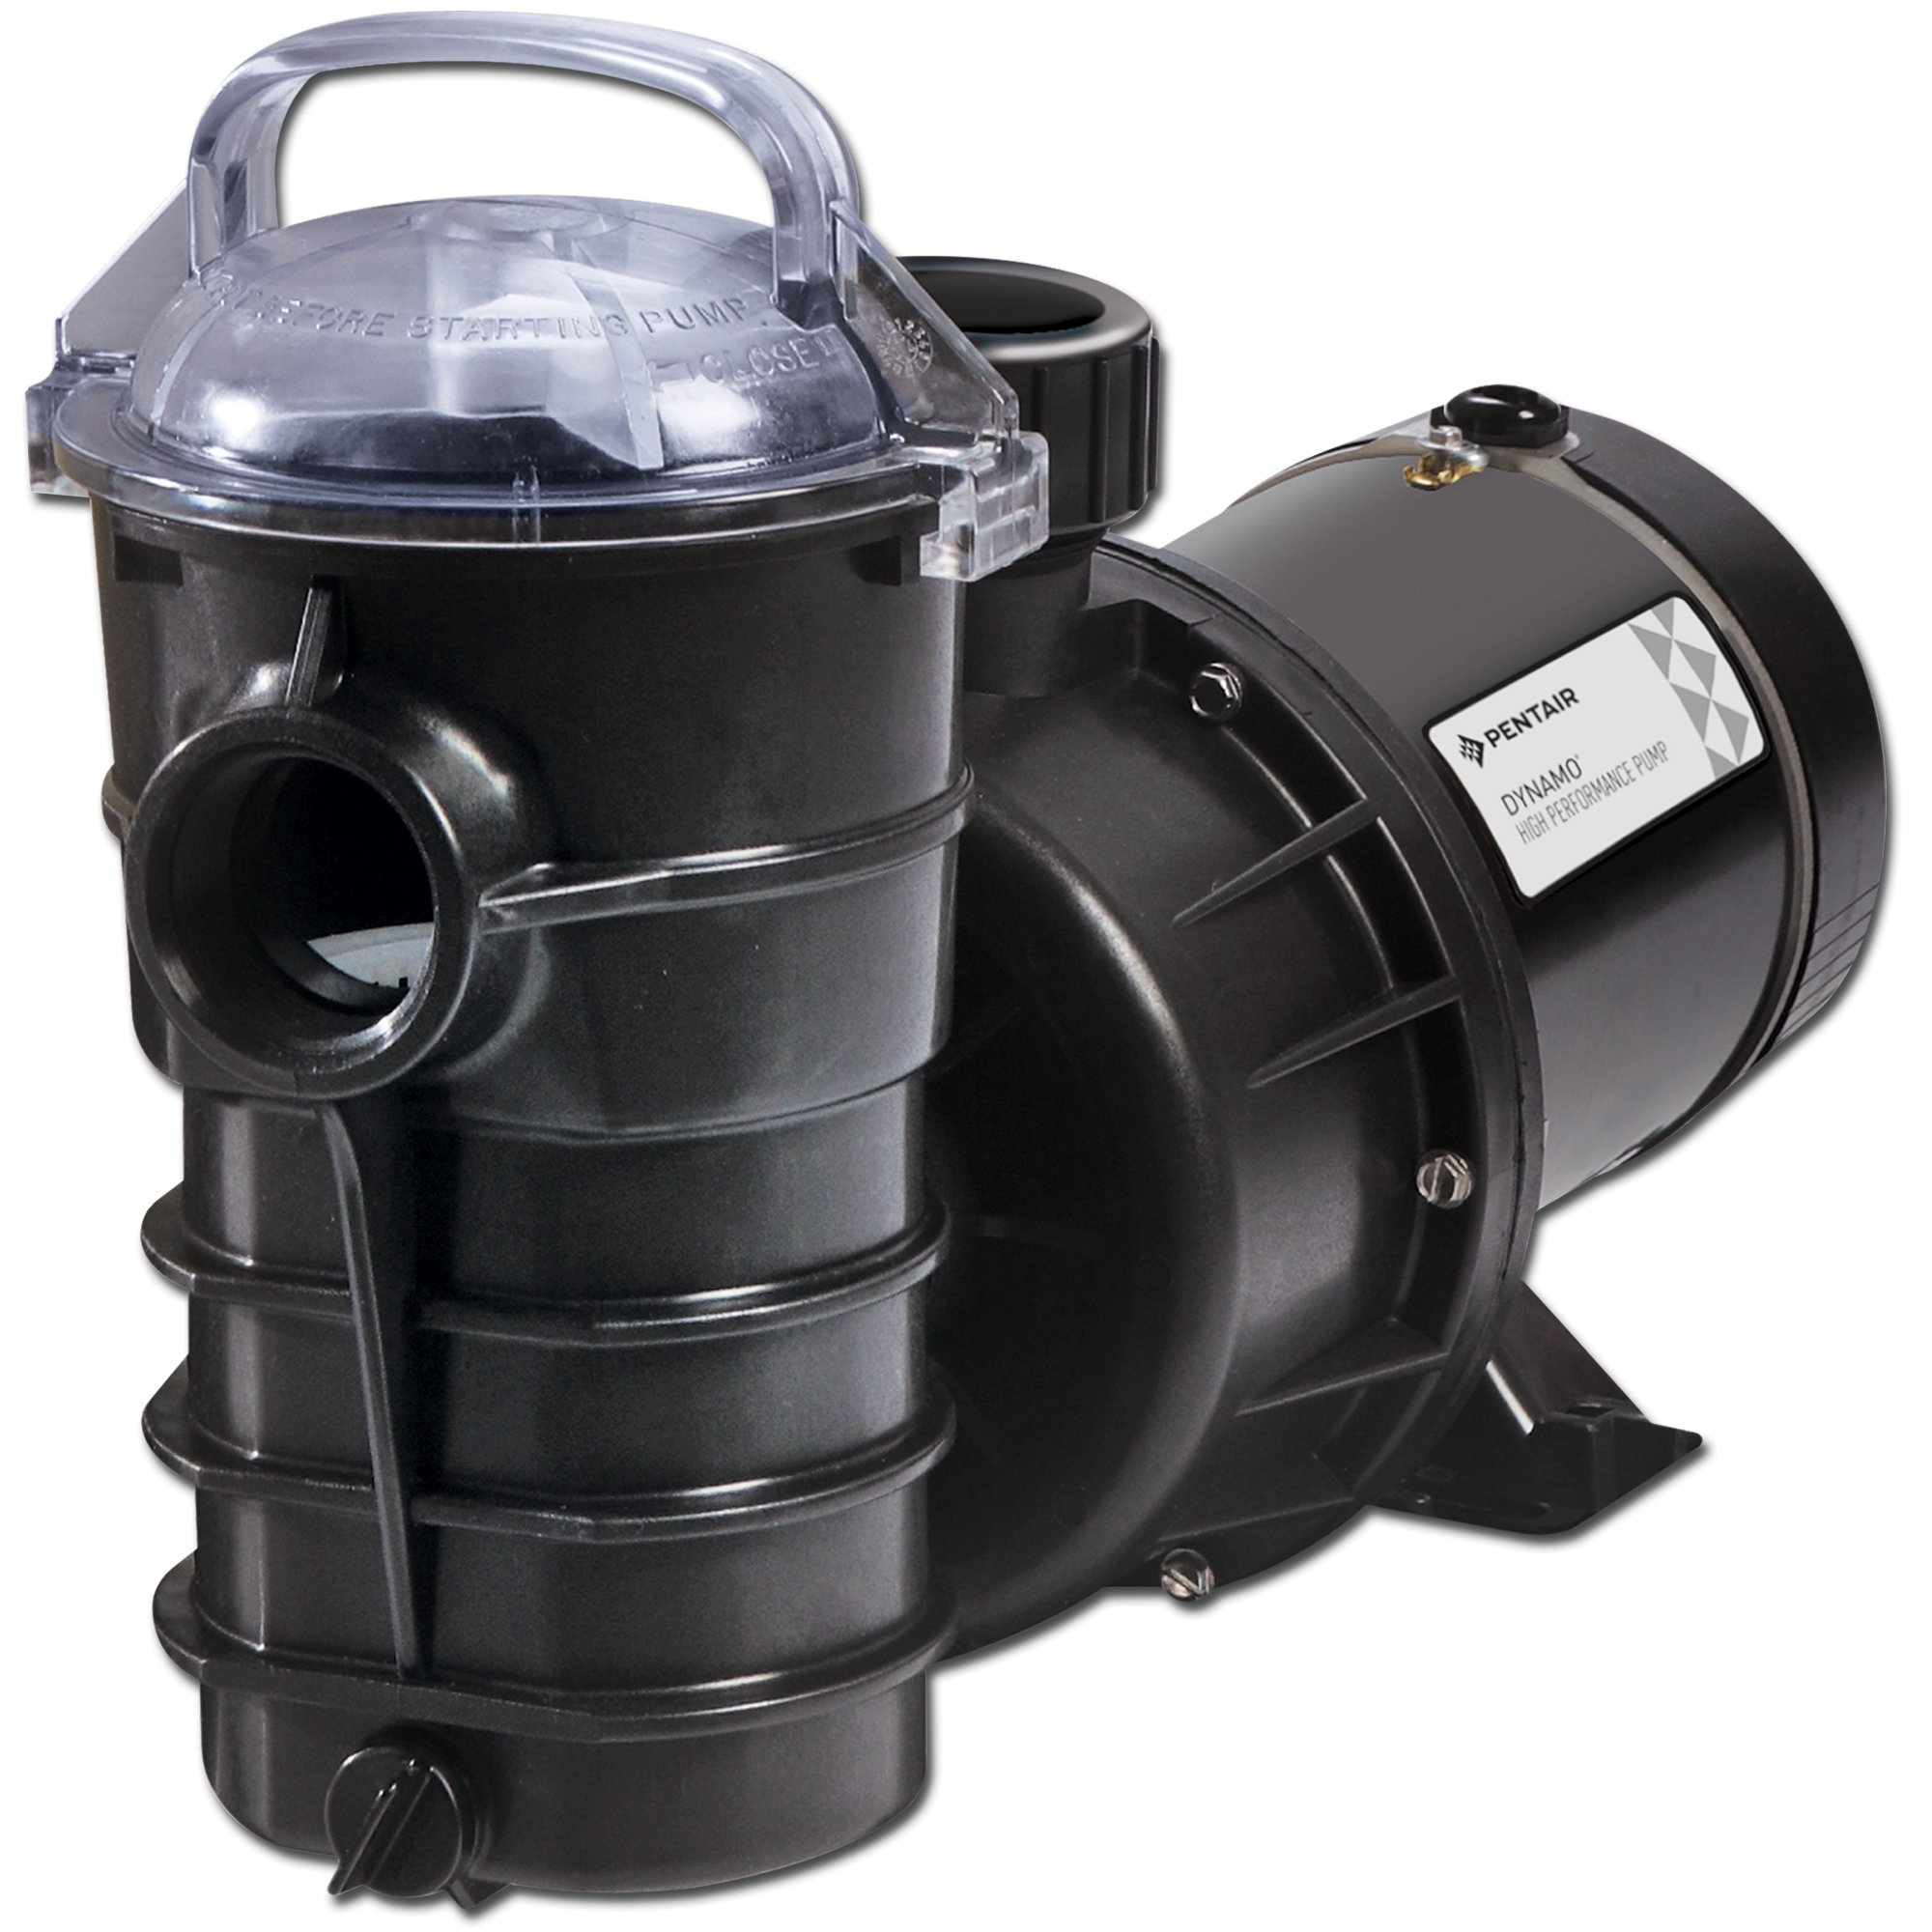 Pentair Dynamo 1 Horsepower Above Ground Pool Pump - 340197